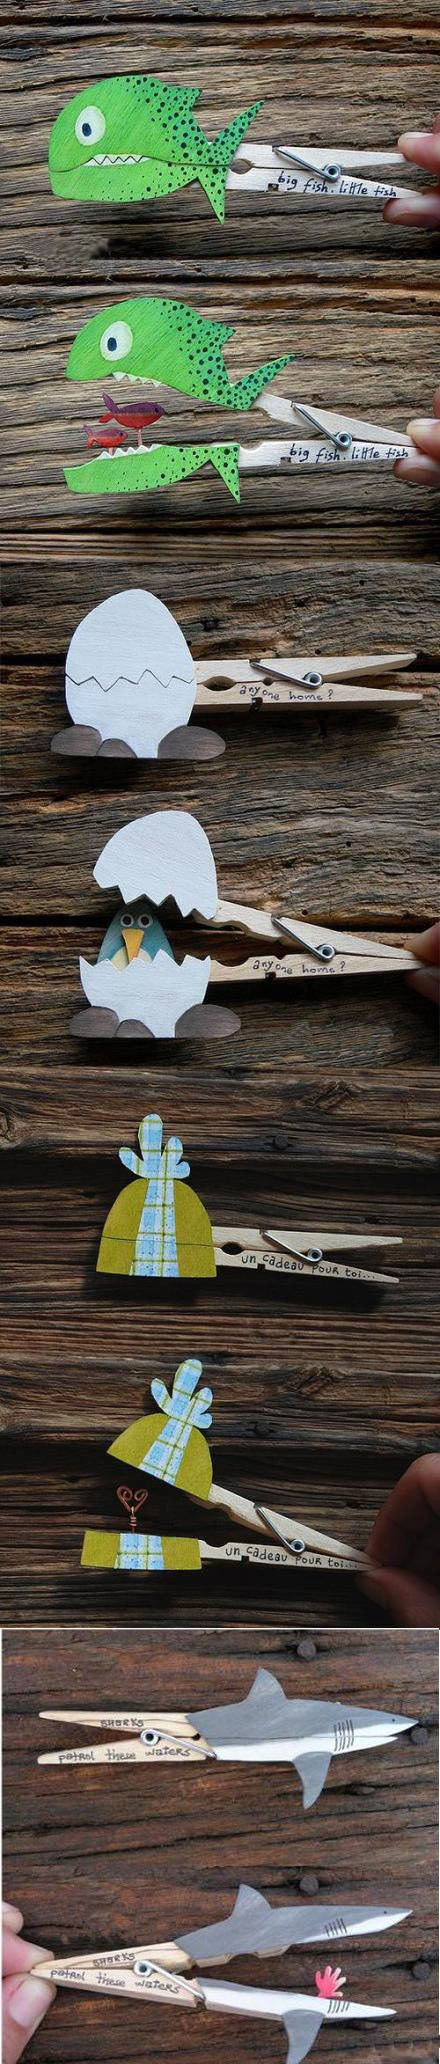 Clothes pegs make fun puppets for little ones!